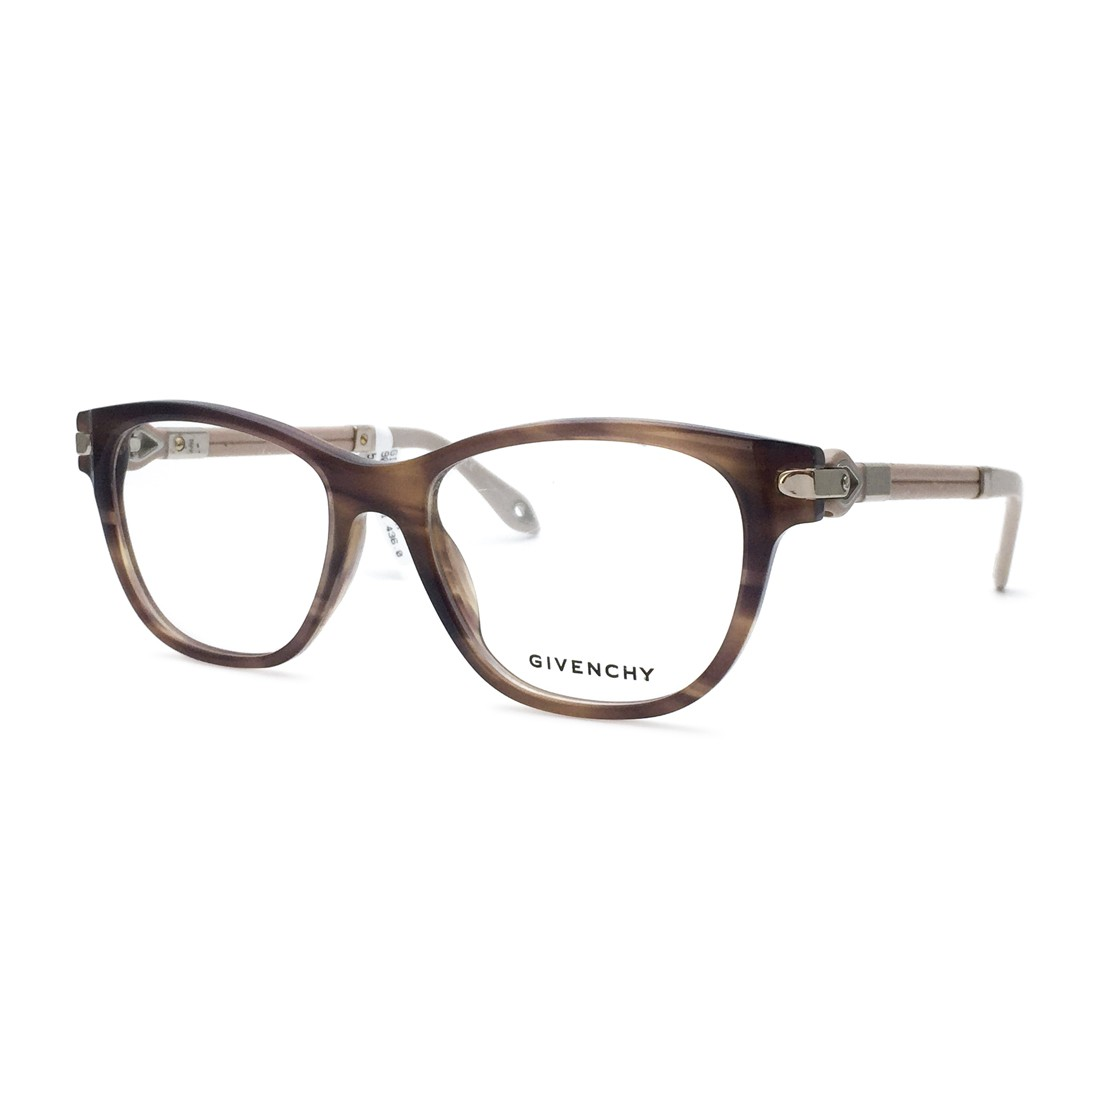 GIVENCHY 905 06YZ